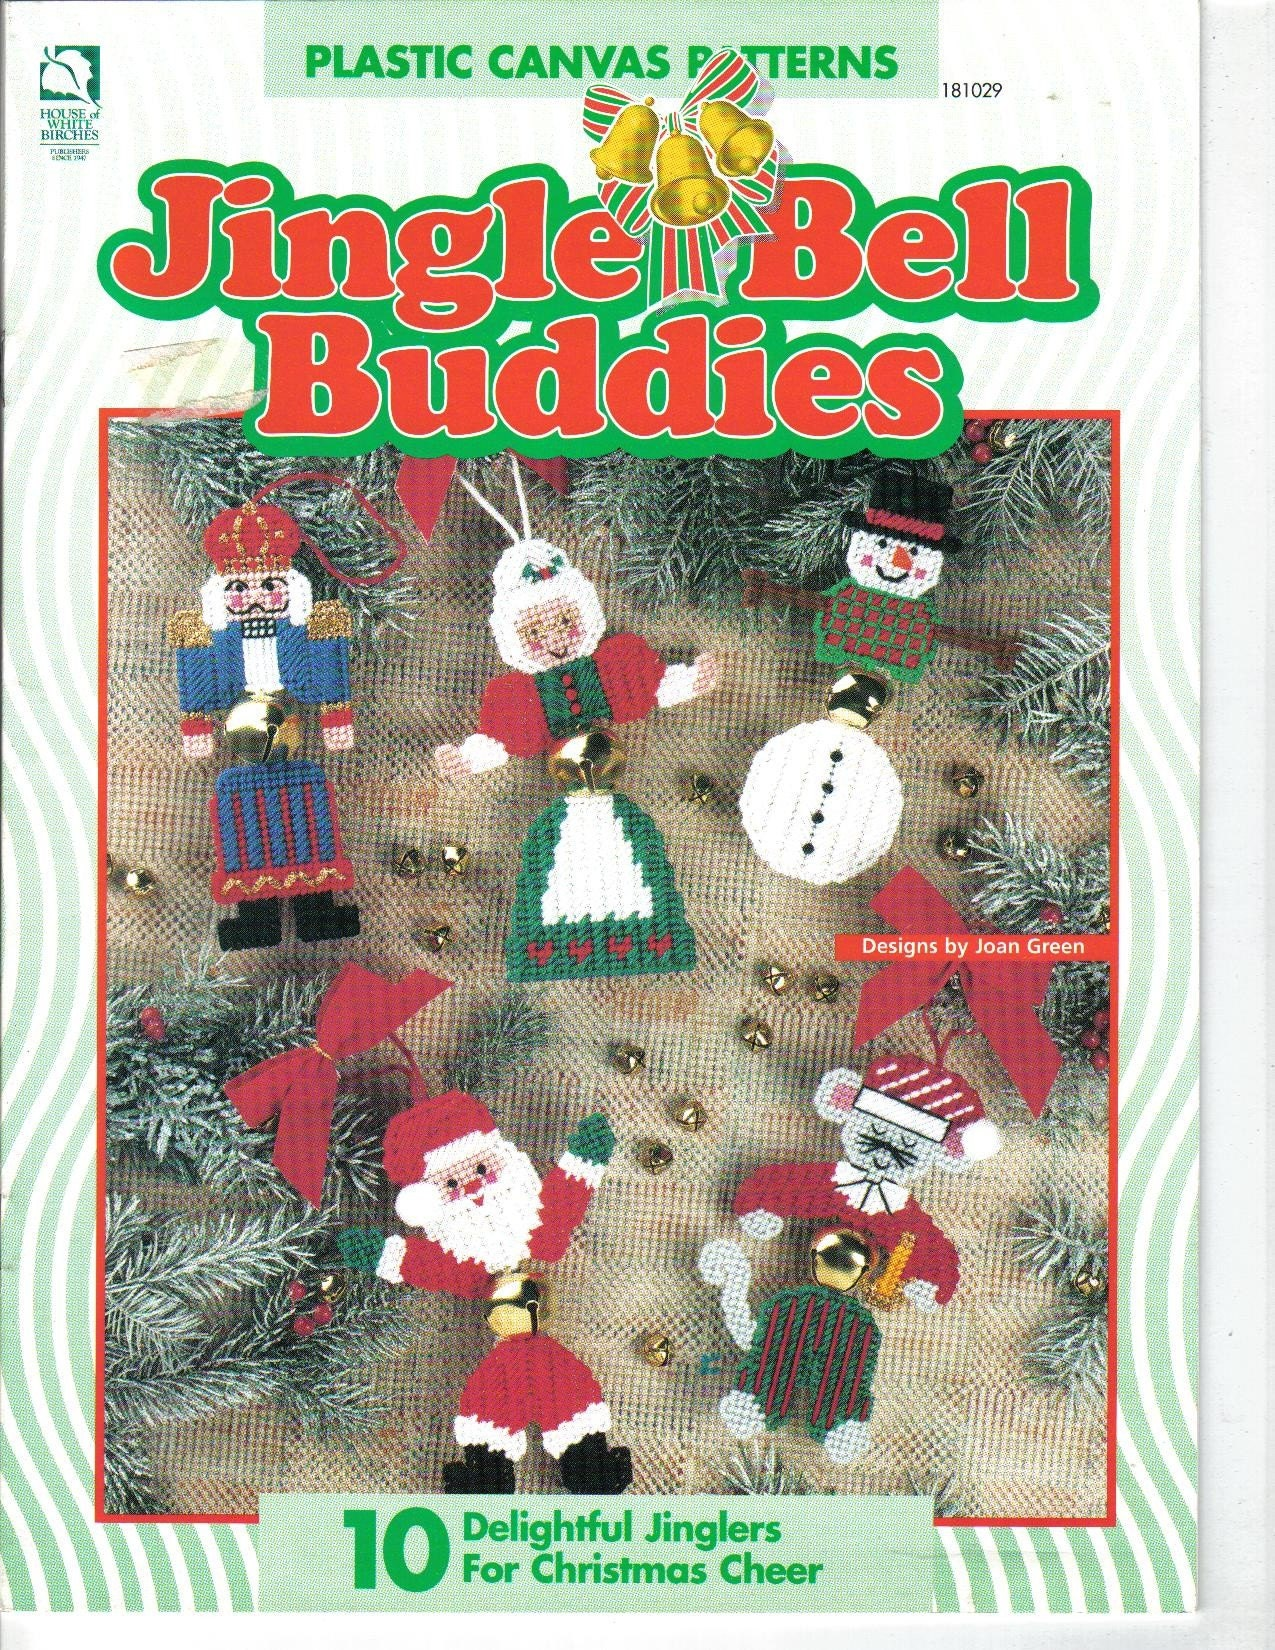 Jingle bell buddies ornaments in plastic canvas pattern book